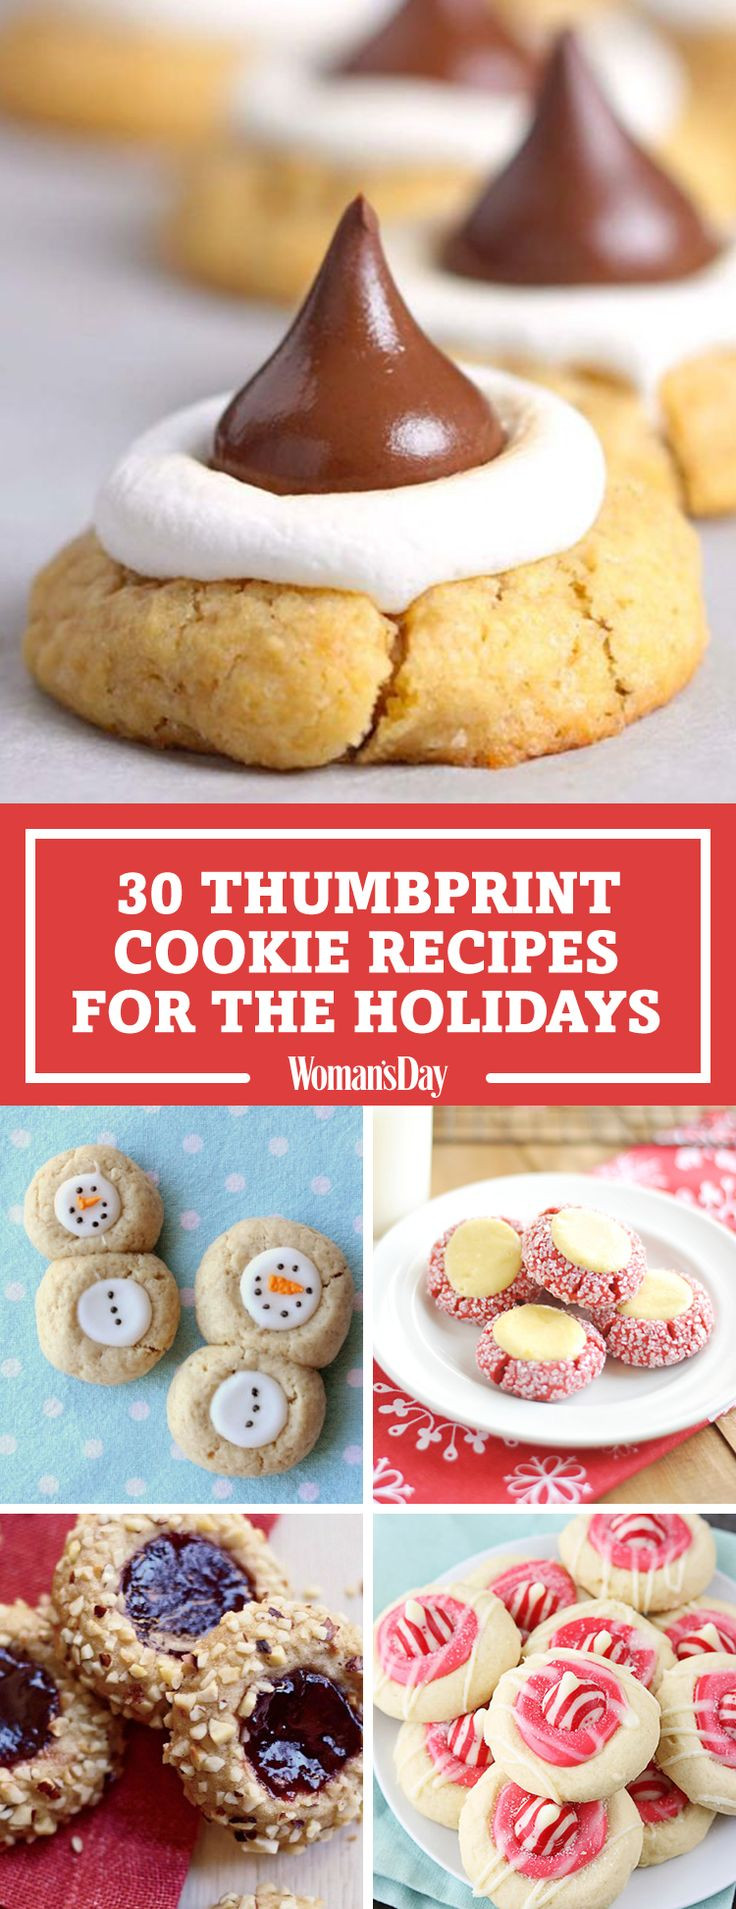 Christmas Baking Goods Recipes  Best 25 Christmas cookie recipes ideas on Pinterest